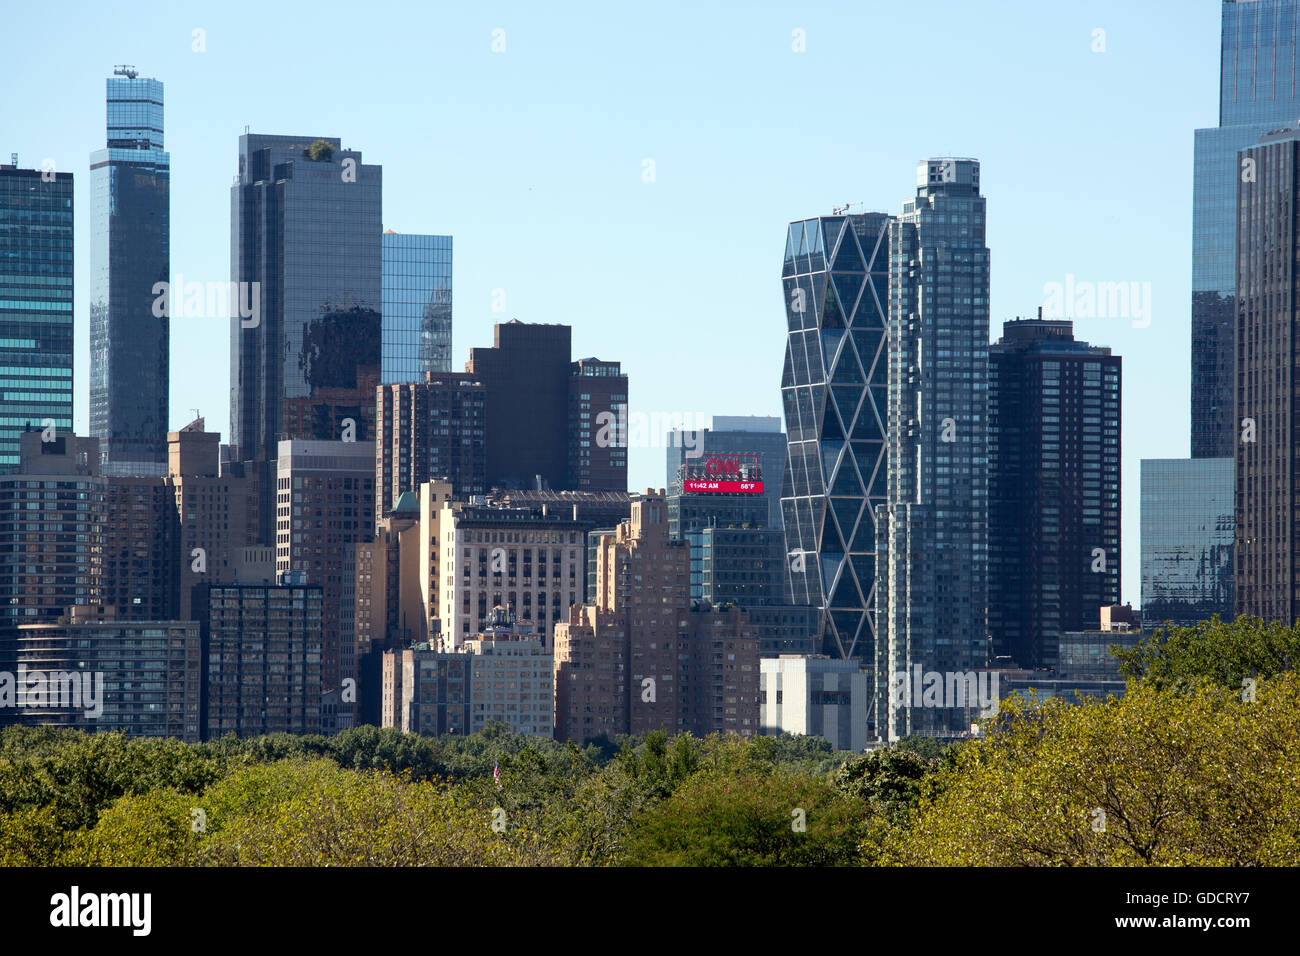 New York City buildings and central park trees view from a roof - Stock Image